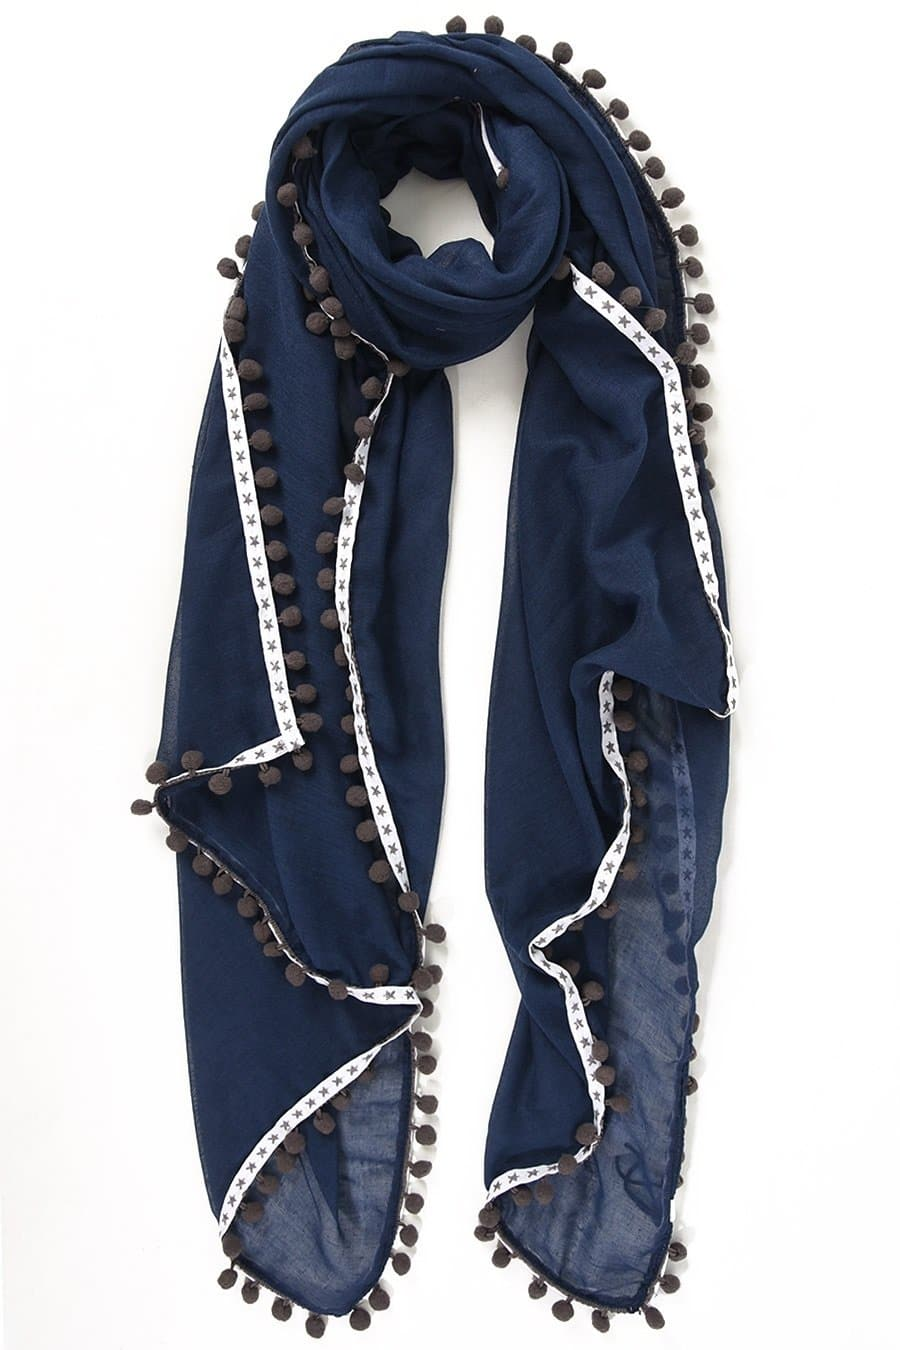 Pom Pom Star Trim Scarf - Aurina Ltd